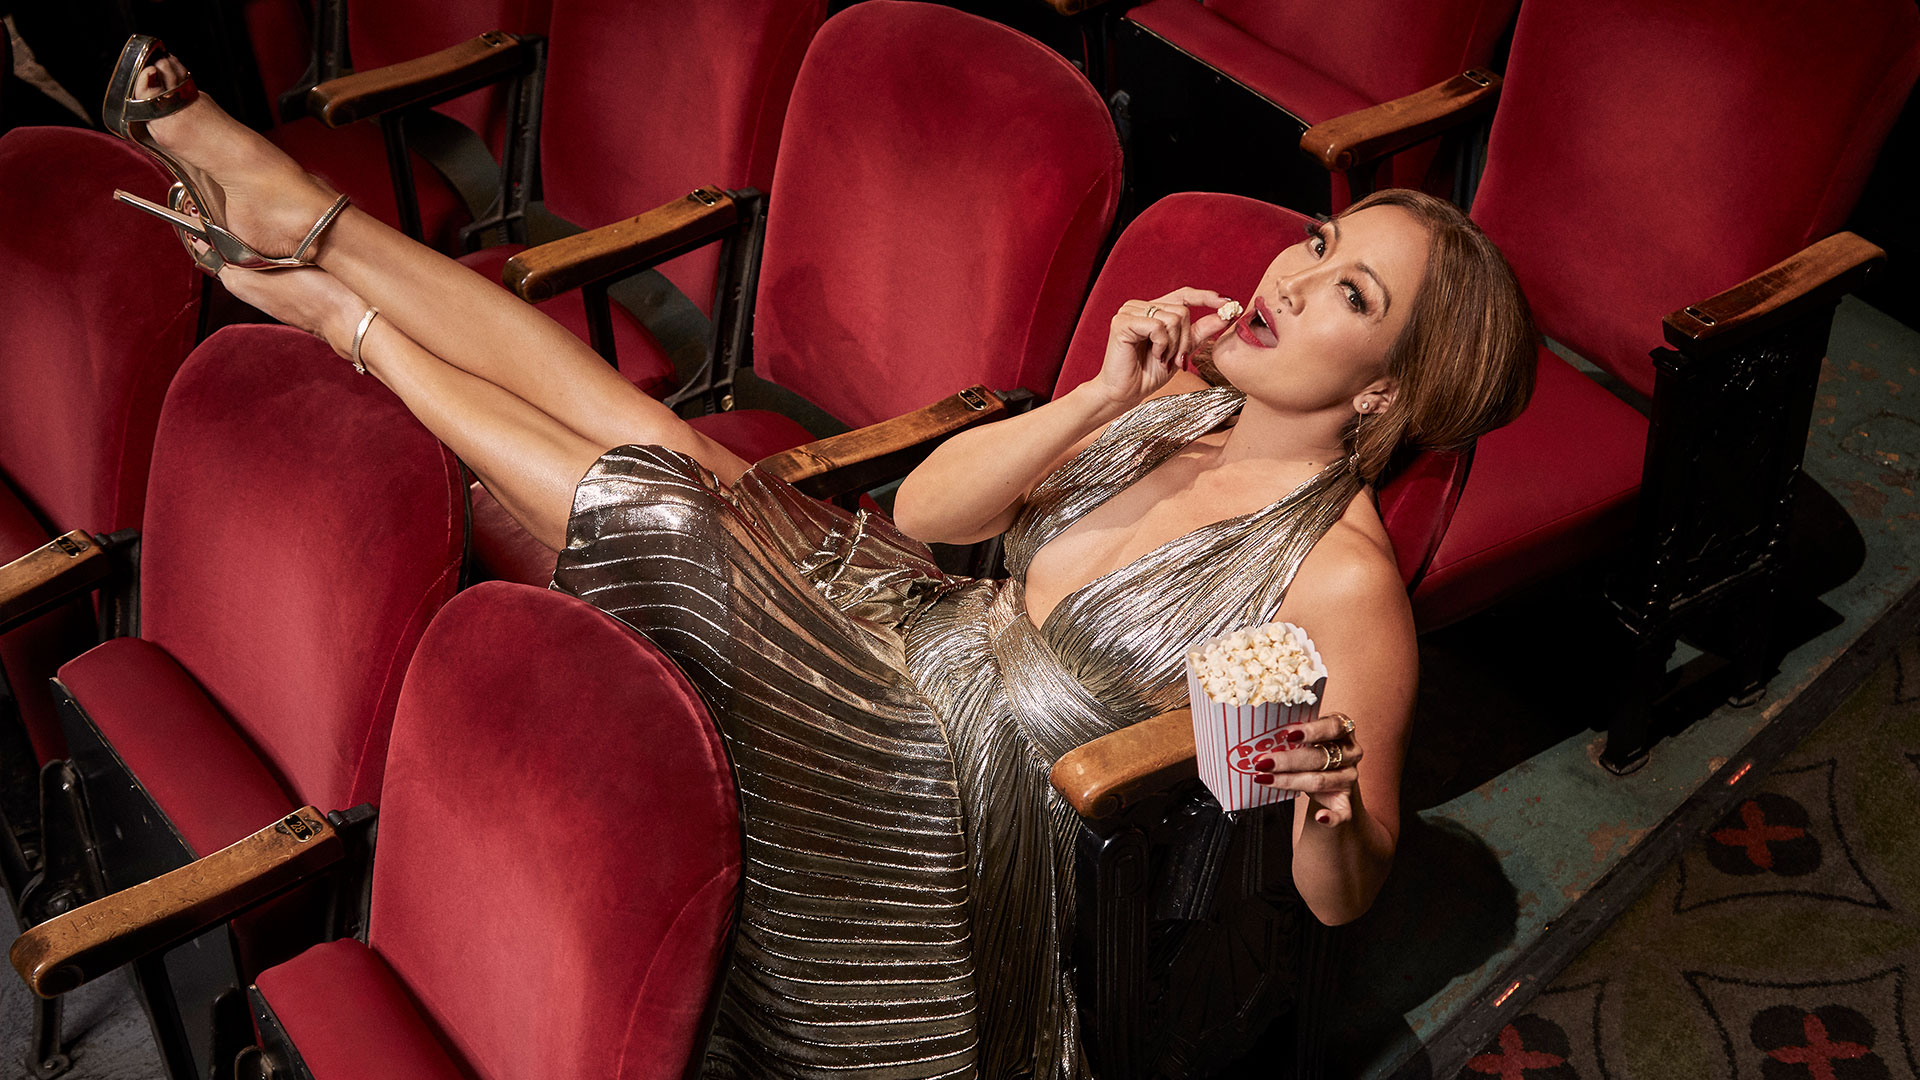 Carrie Ann Inaba channels old Hollywood glamour